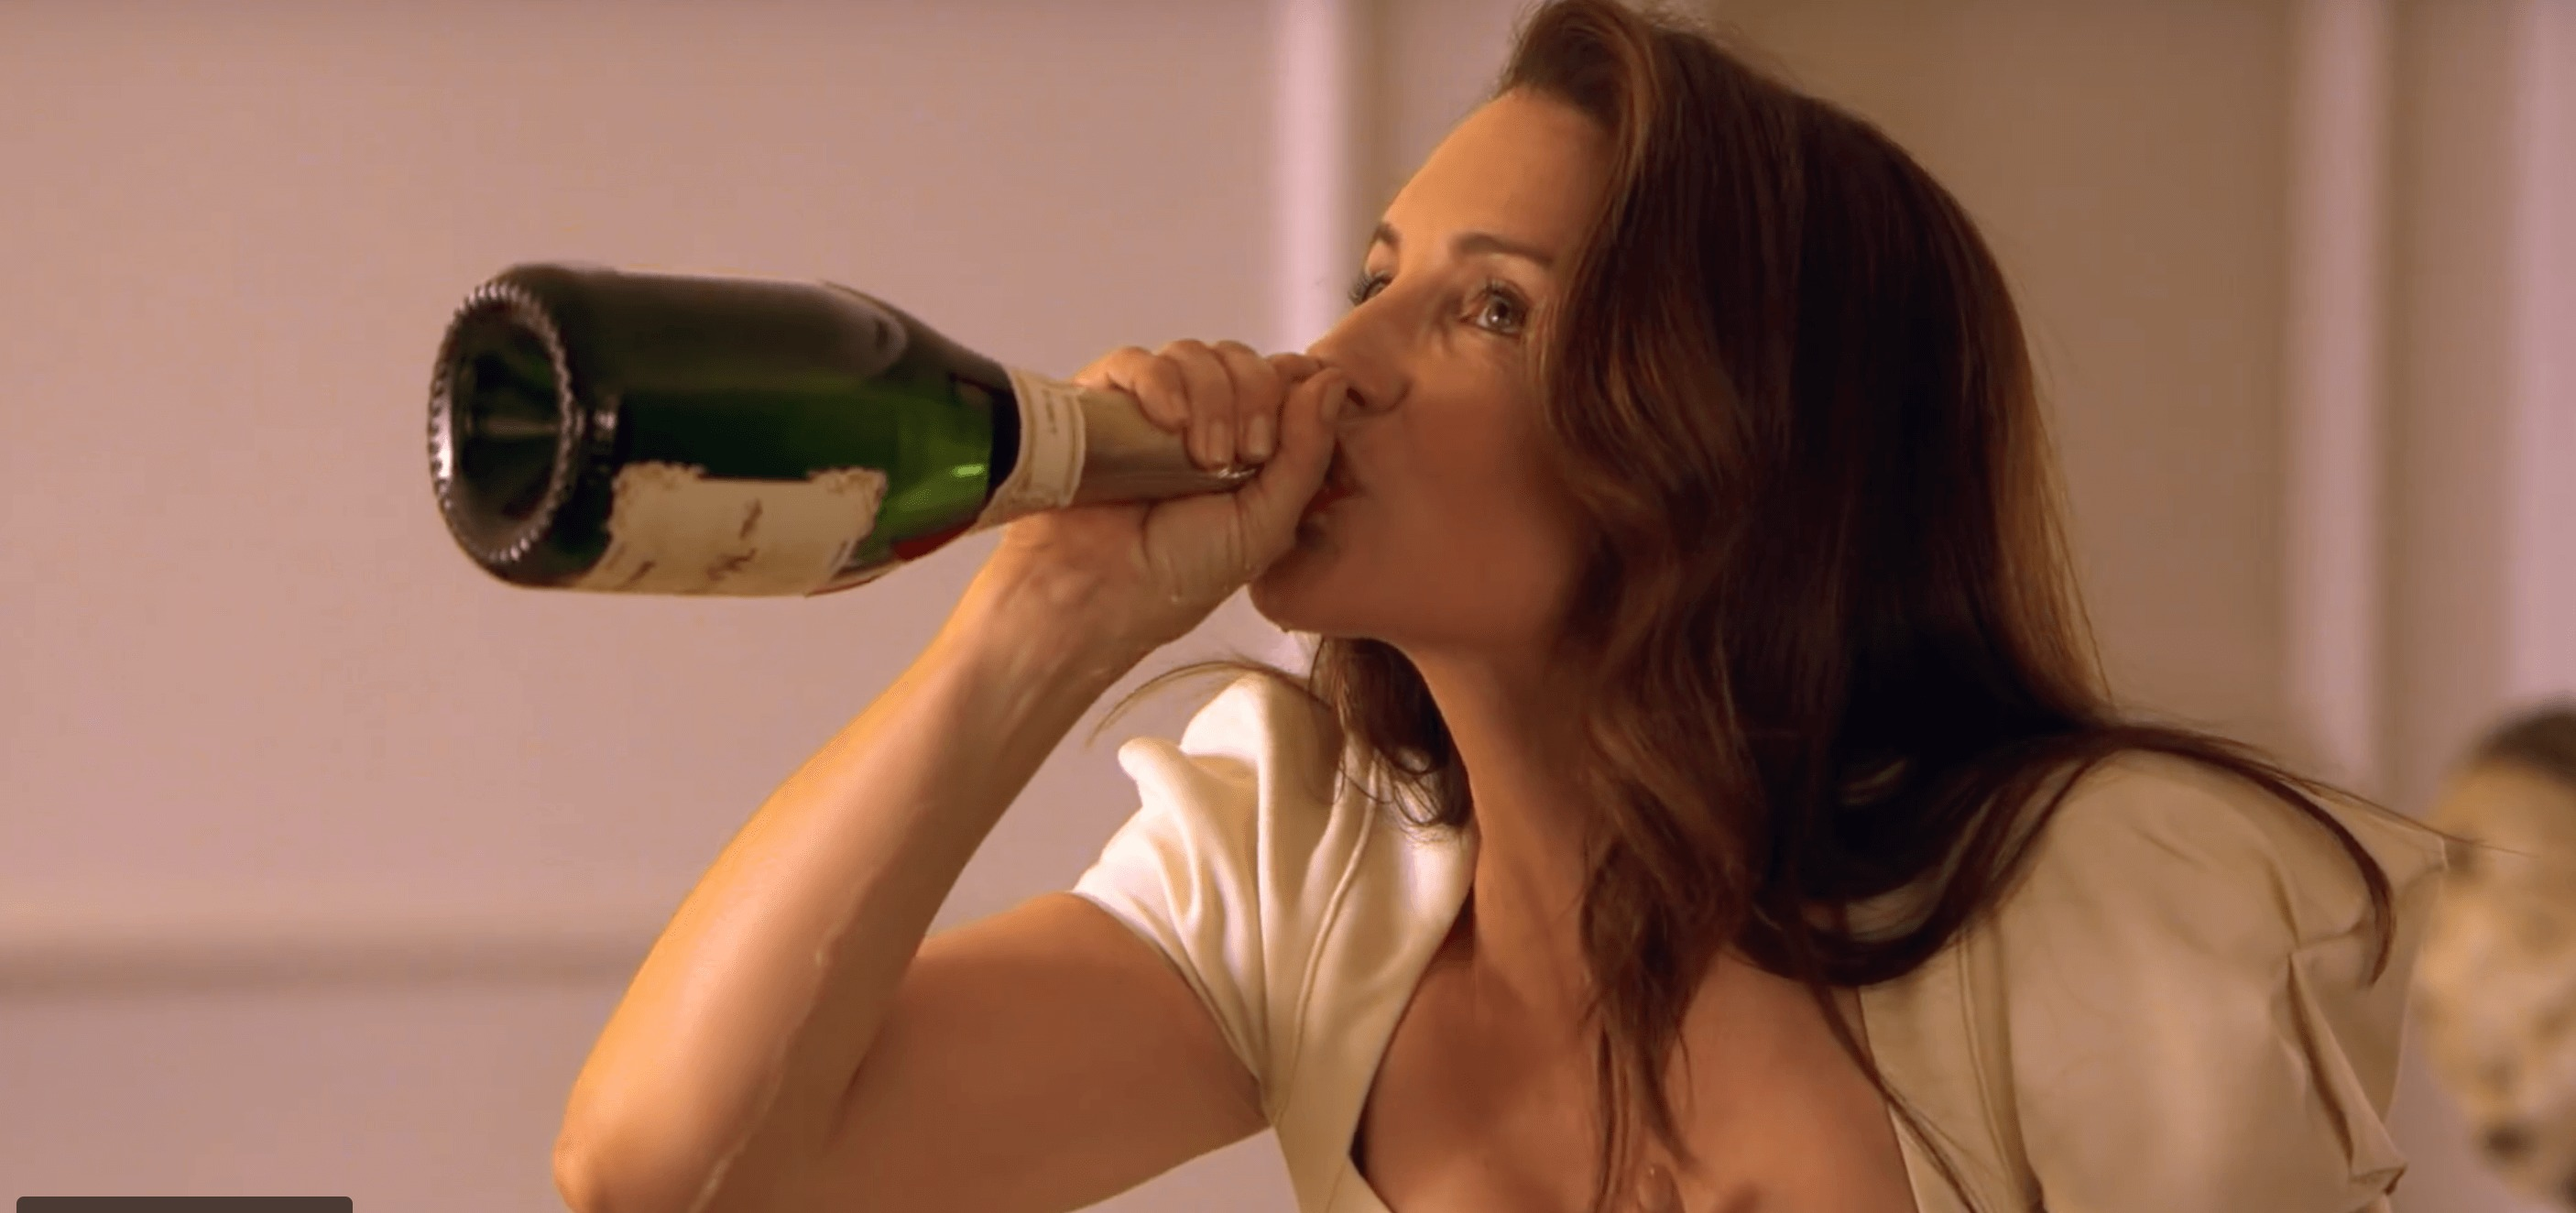 A brown-haired woman is chugging champagne from the bottle.